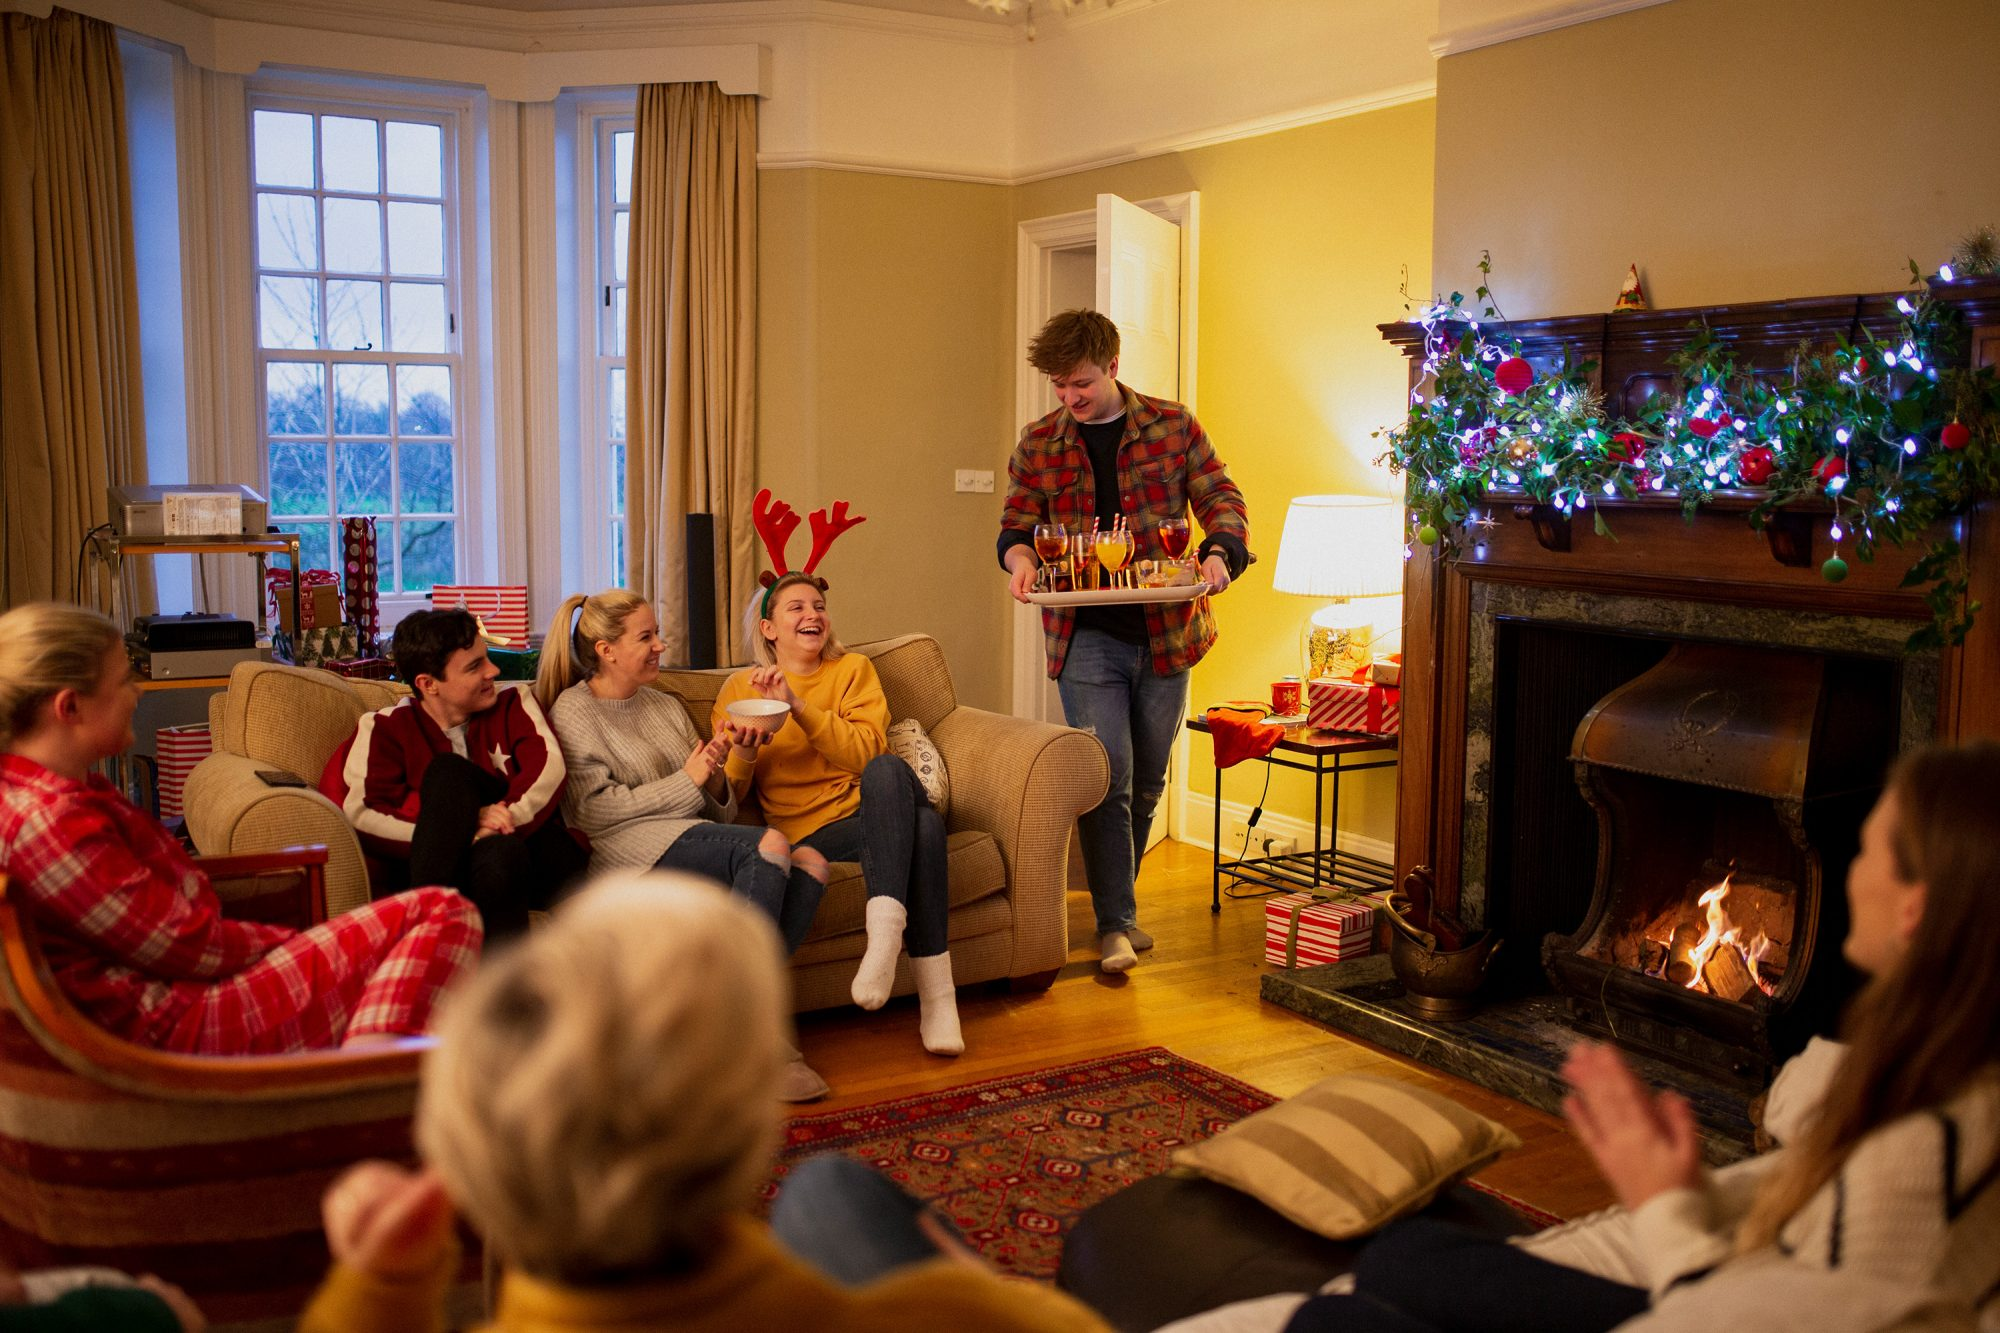 One young man is serving drinks to his friends at a Christmas house party.